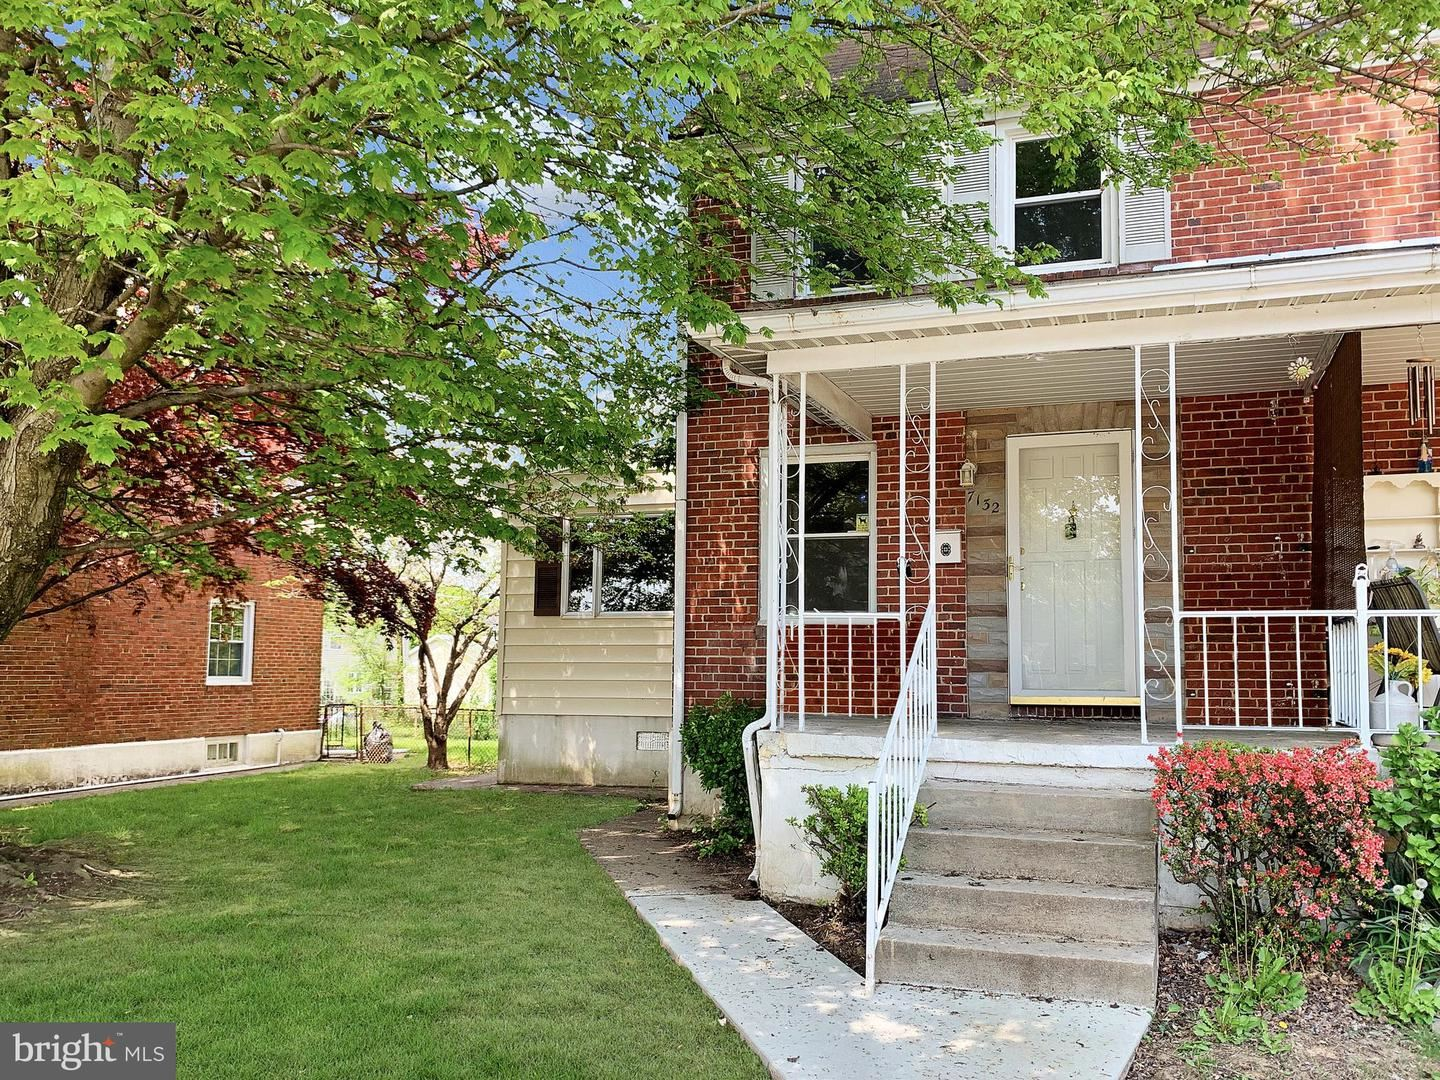 7132 WILLOWDALE AVE, Baltimore, MD 21206 - MLS#: MDBC527836